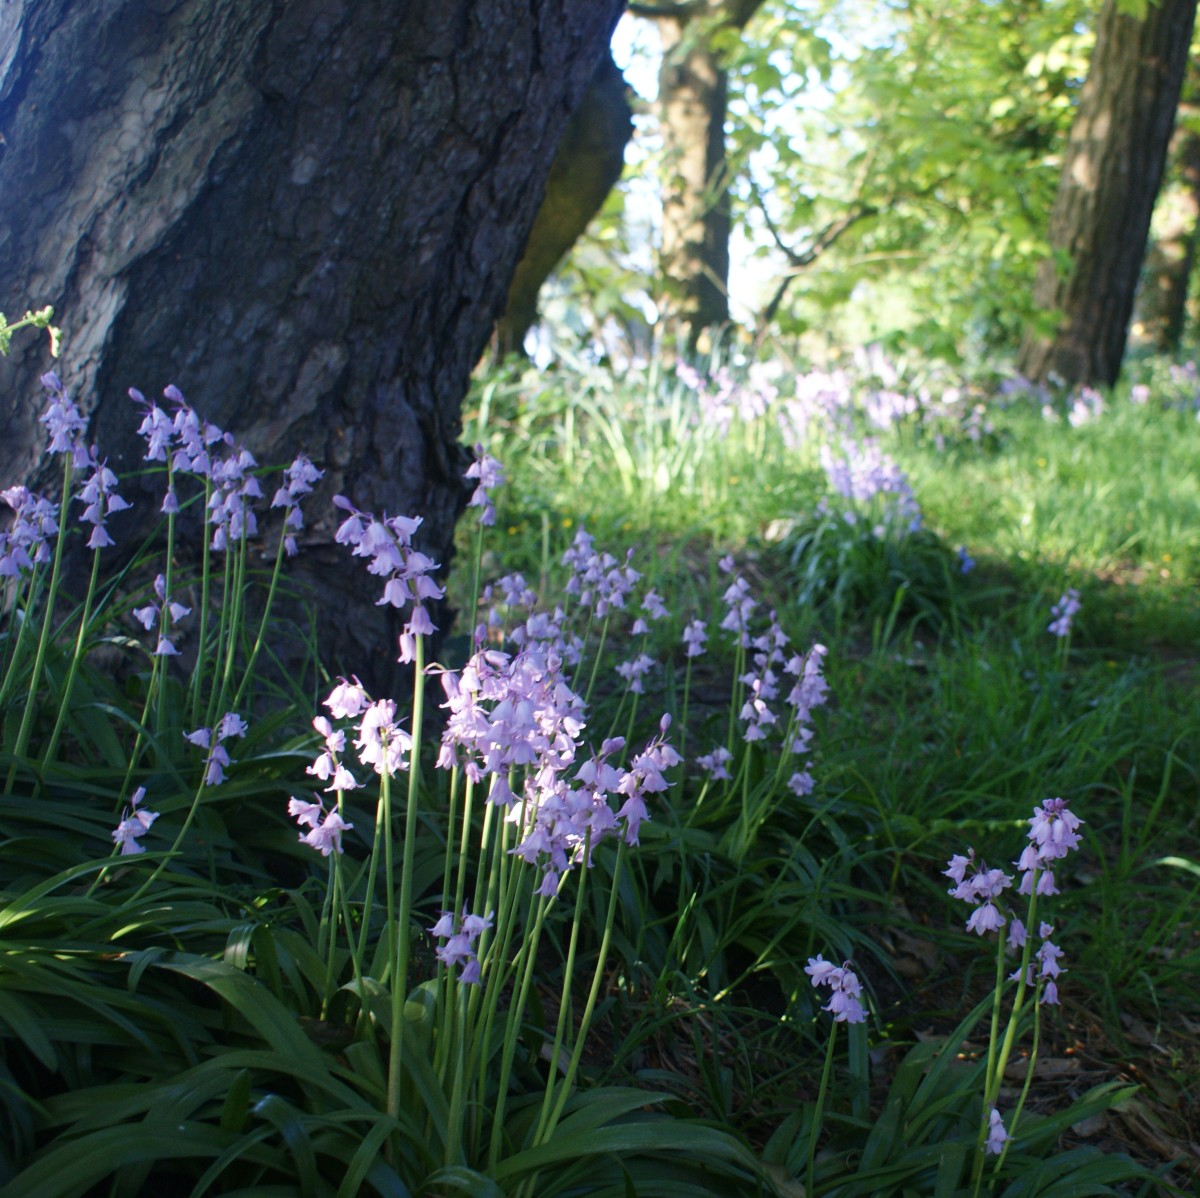 Bluebells growing in a shady hollow.